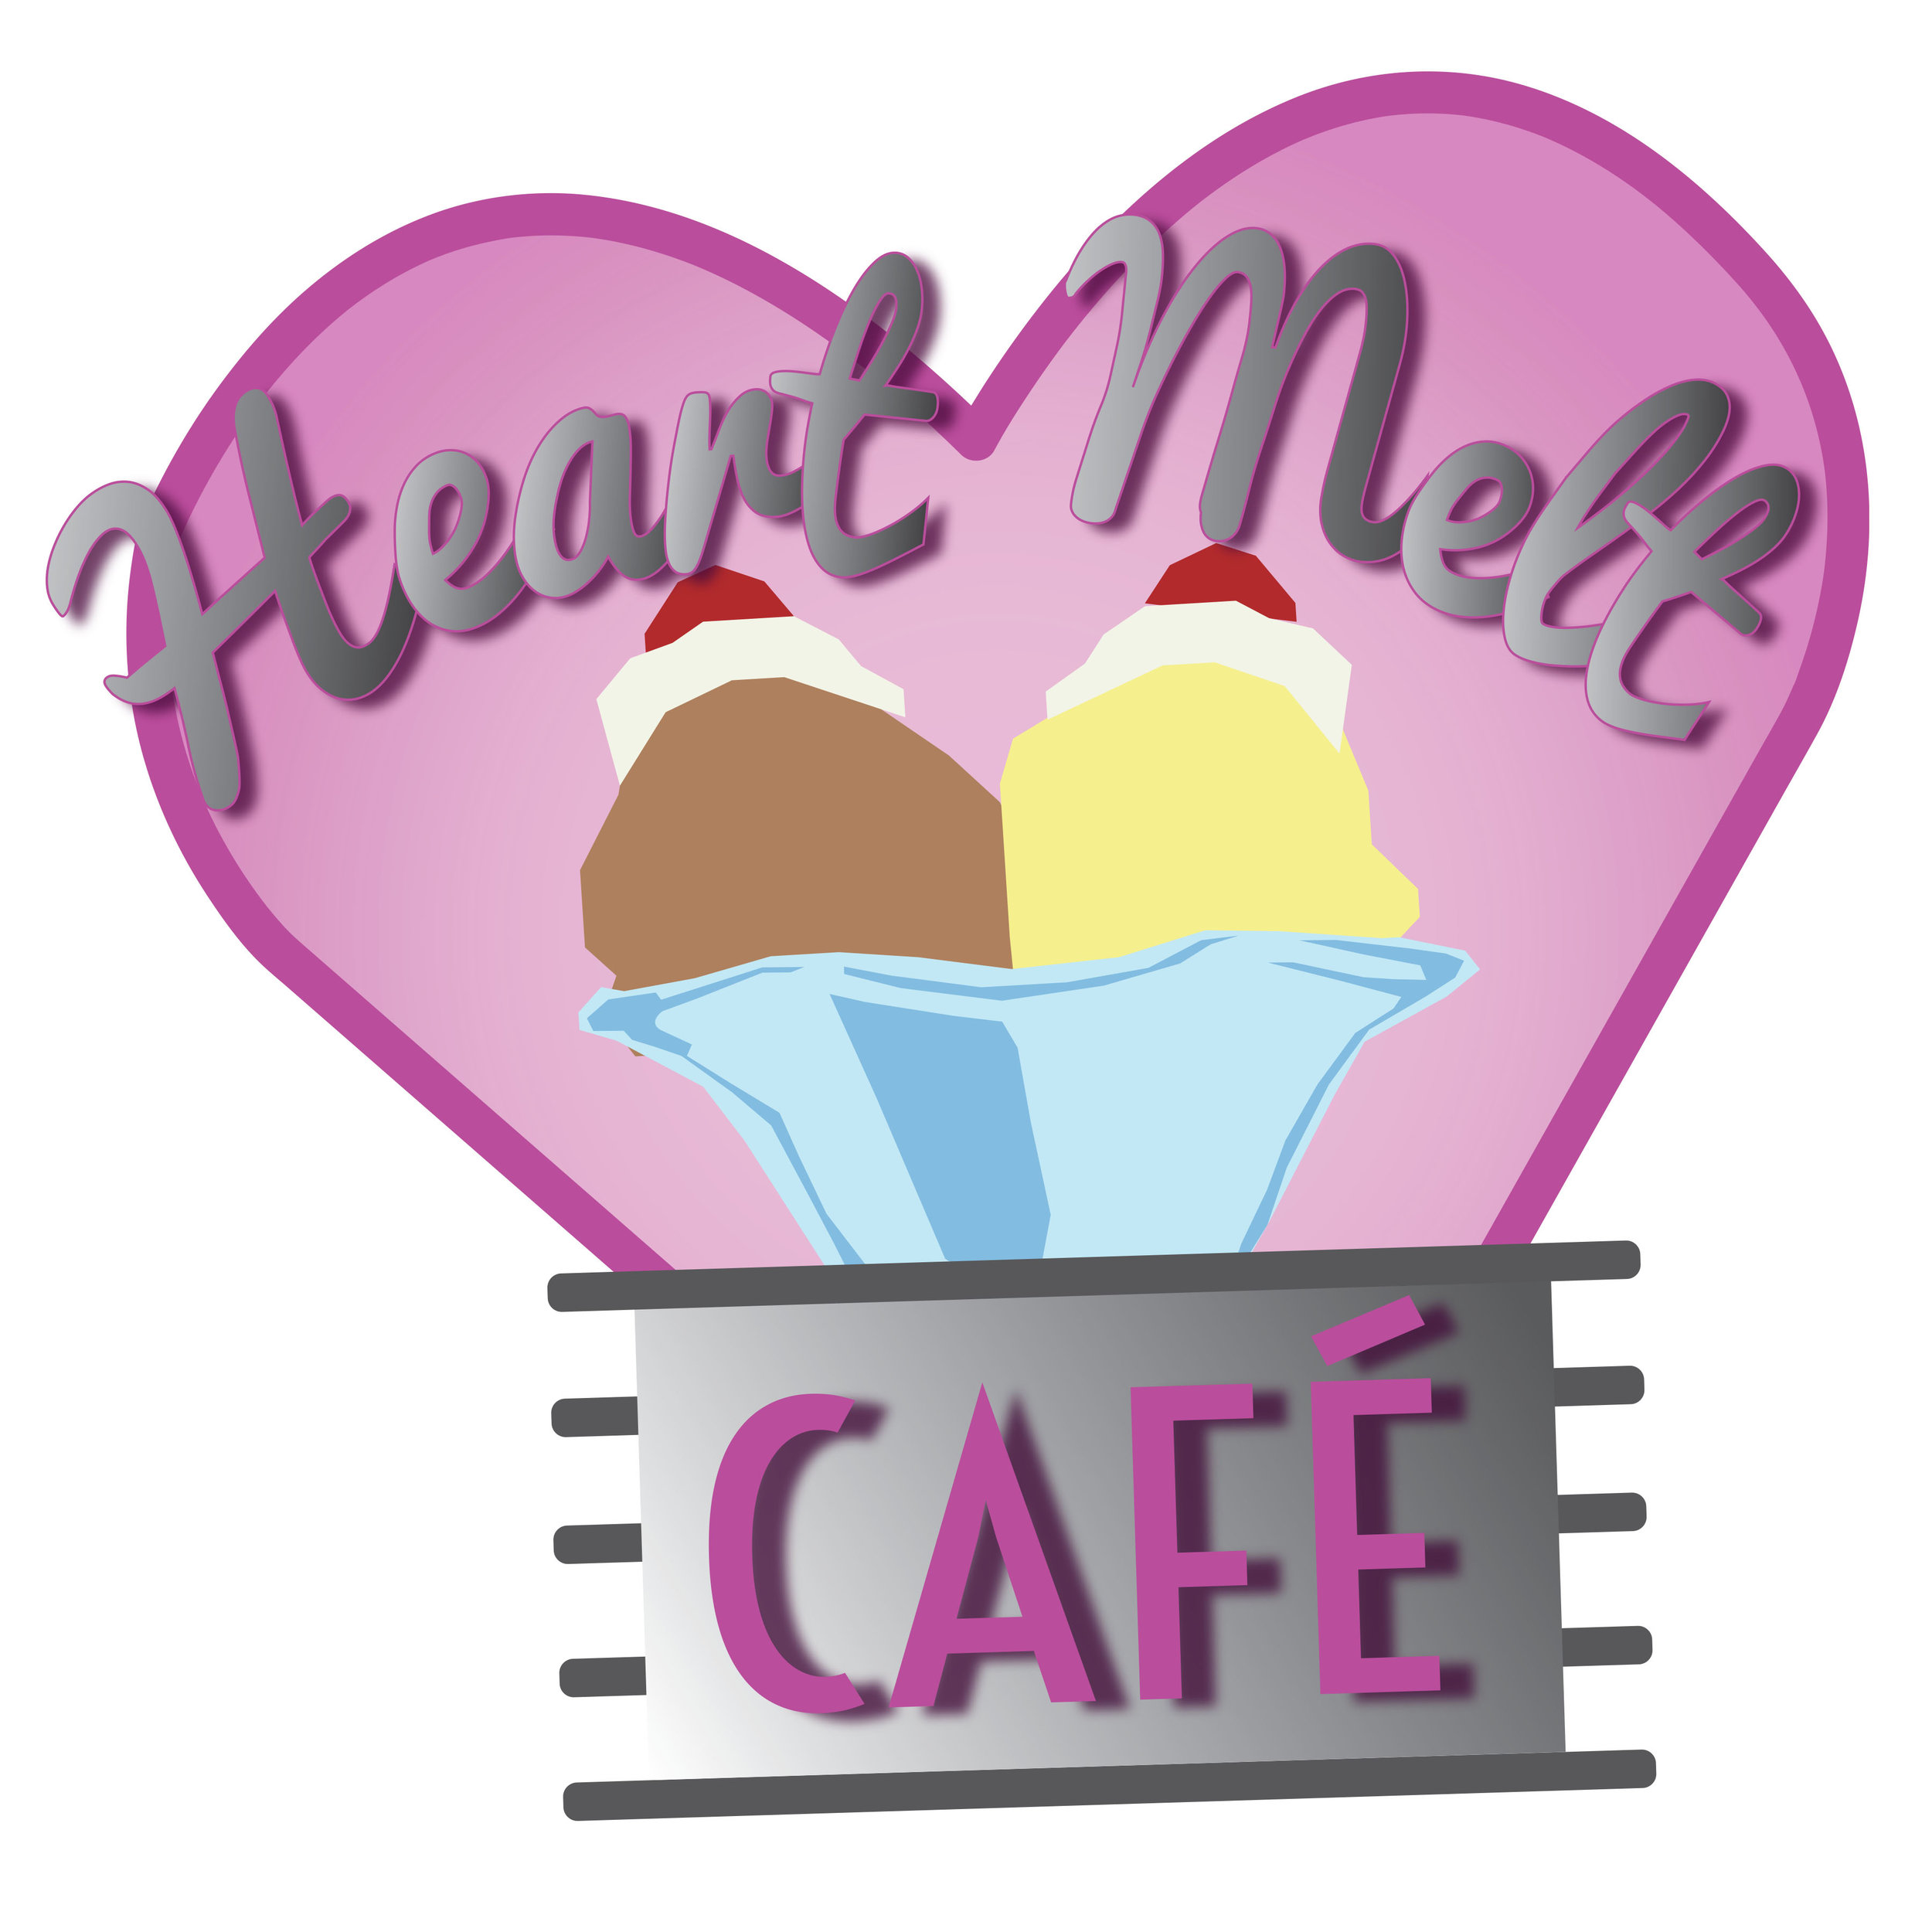 Heart melt Cafe Logo .jpg